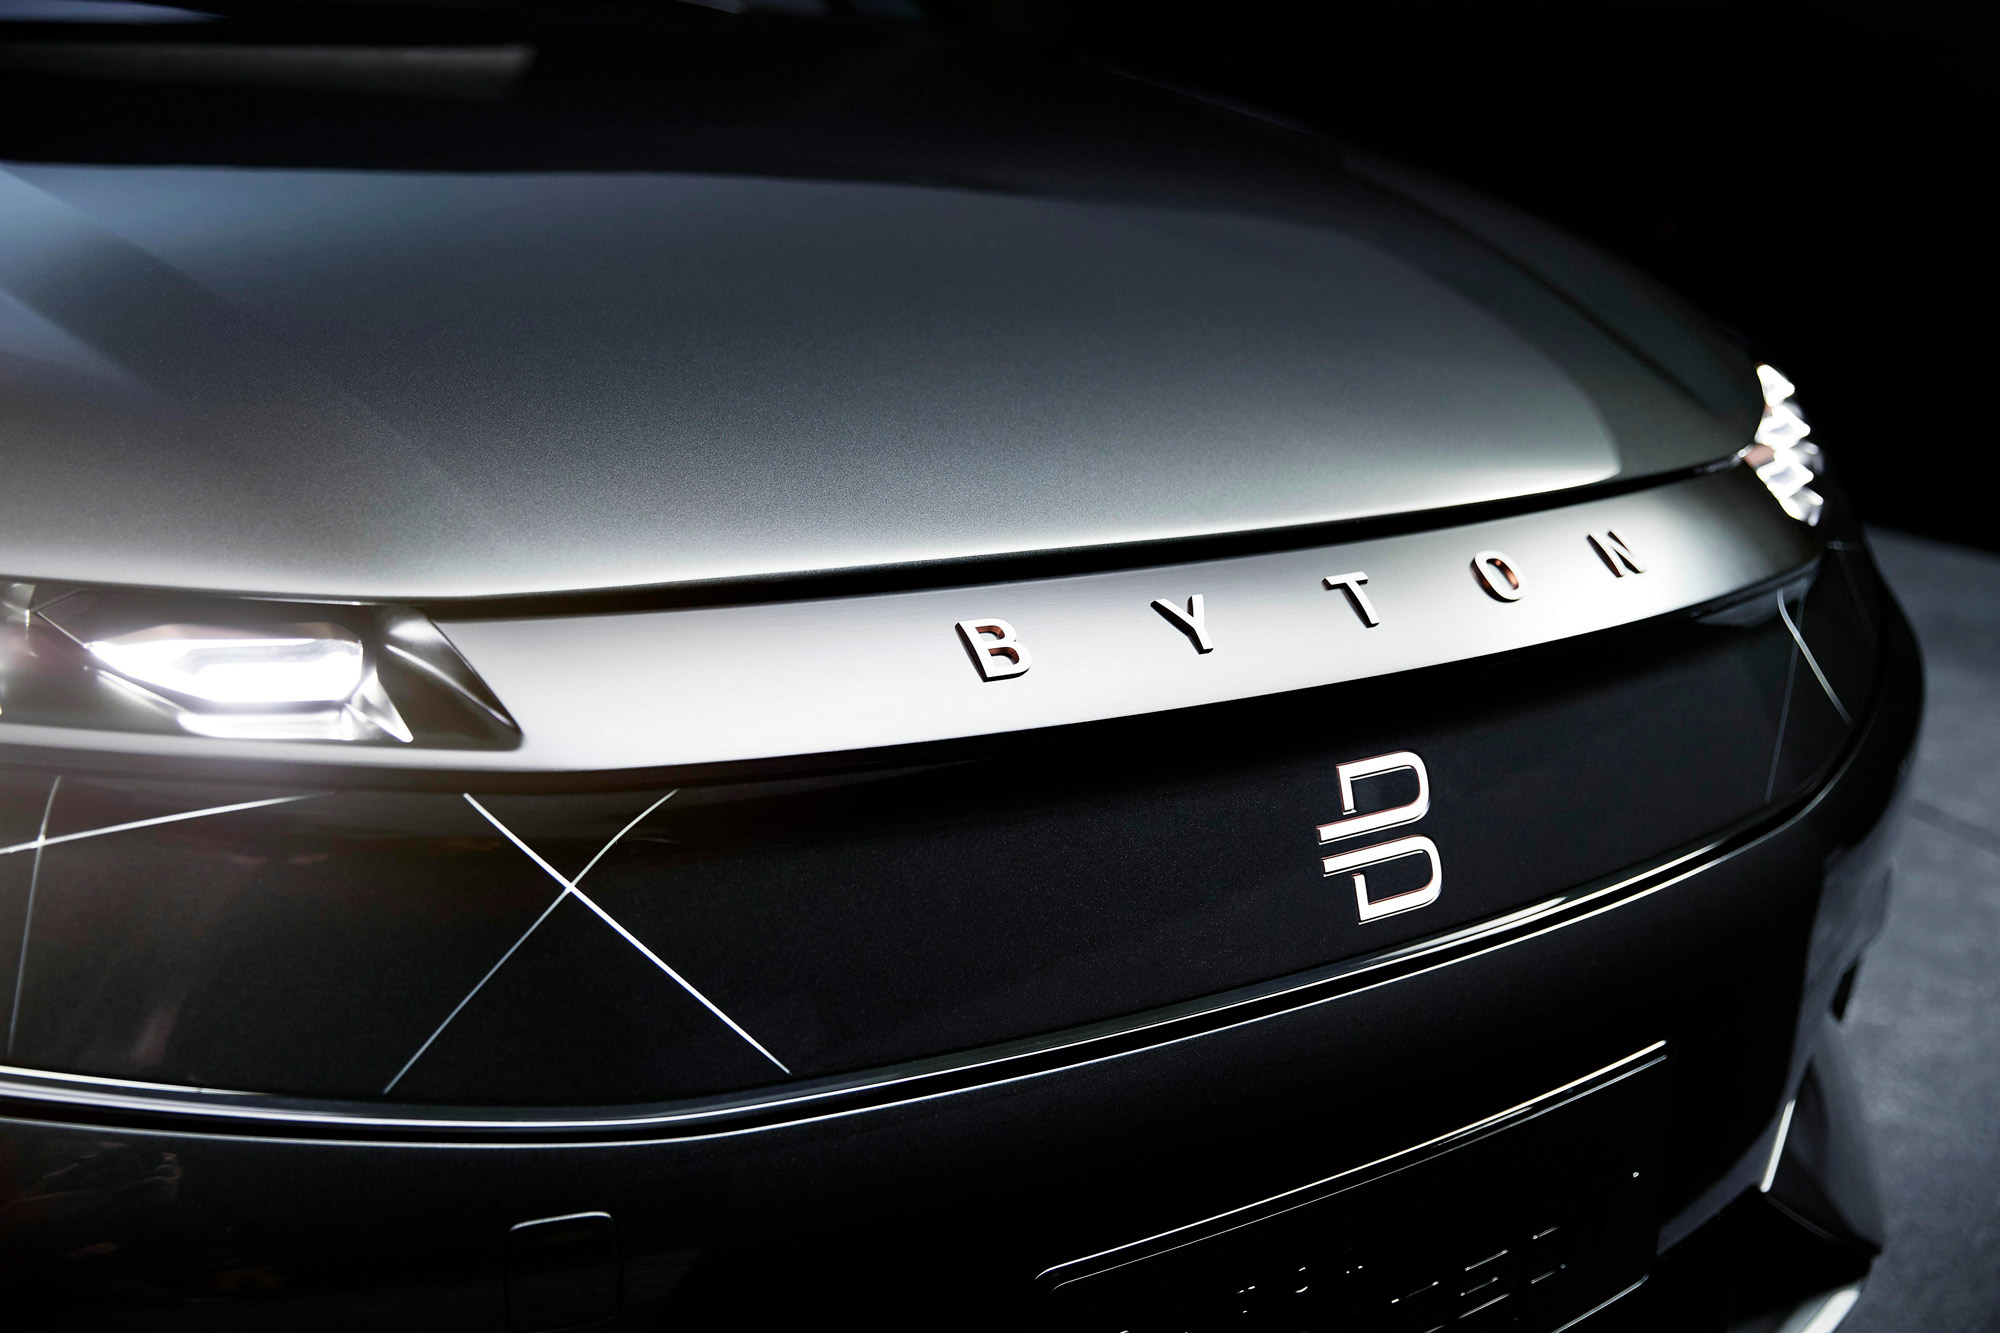 8-BYTON-Smart-Surfaces.jpg